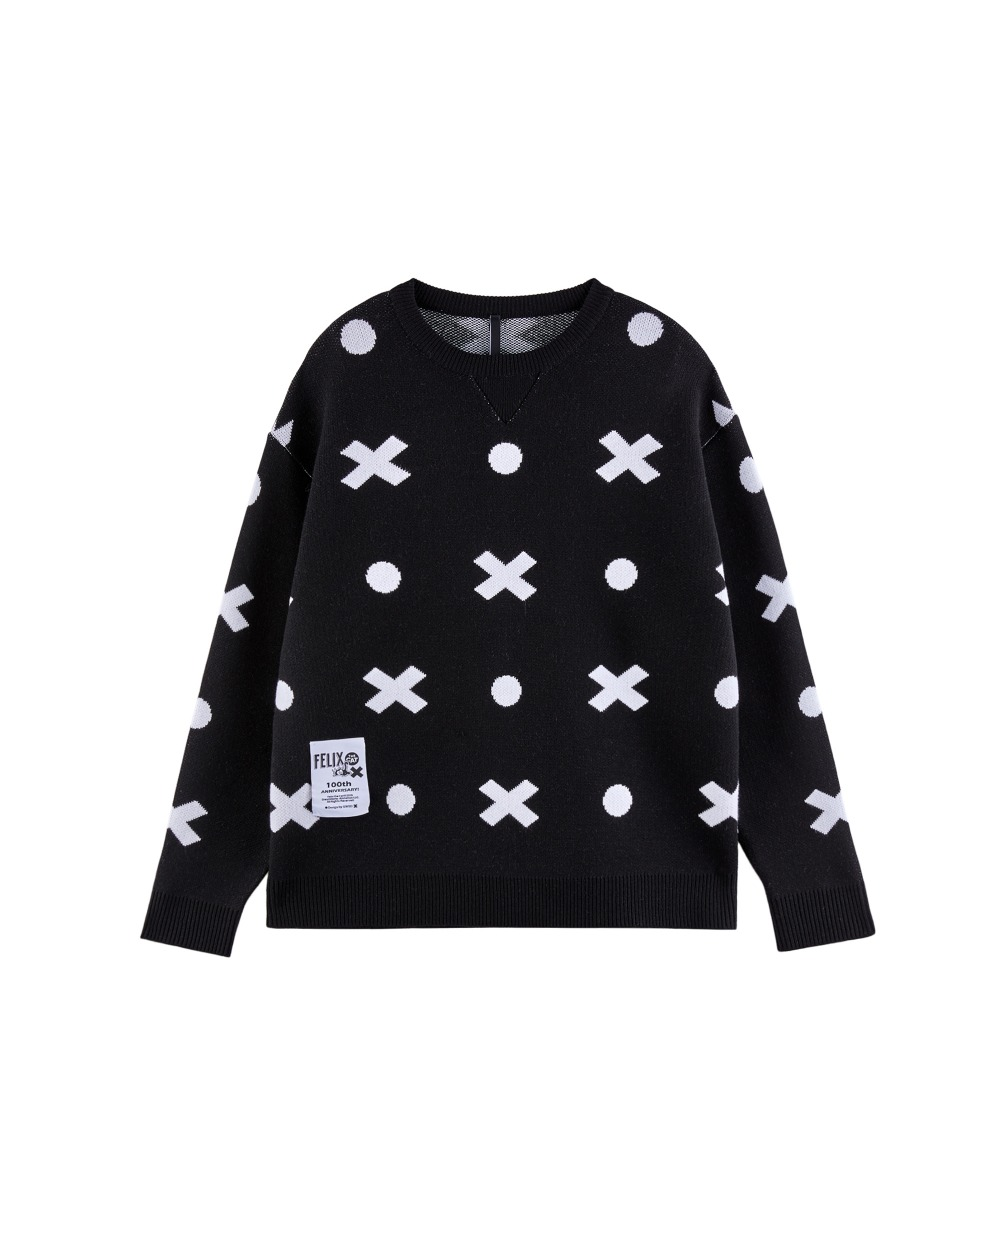 SWBD X FELIX OX KNIT (BLACK)